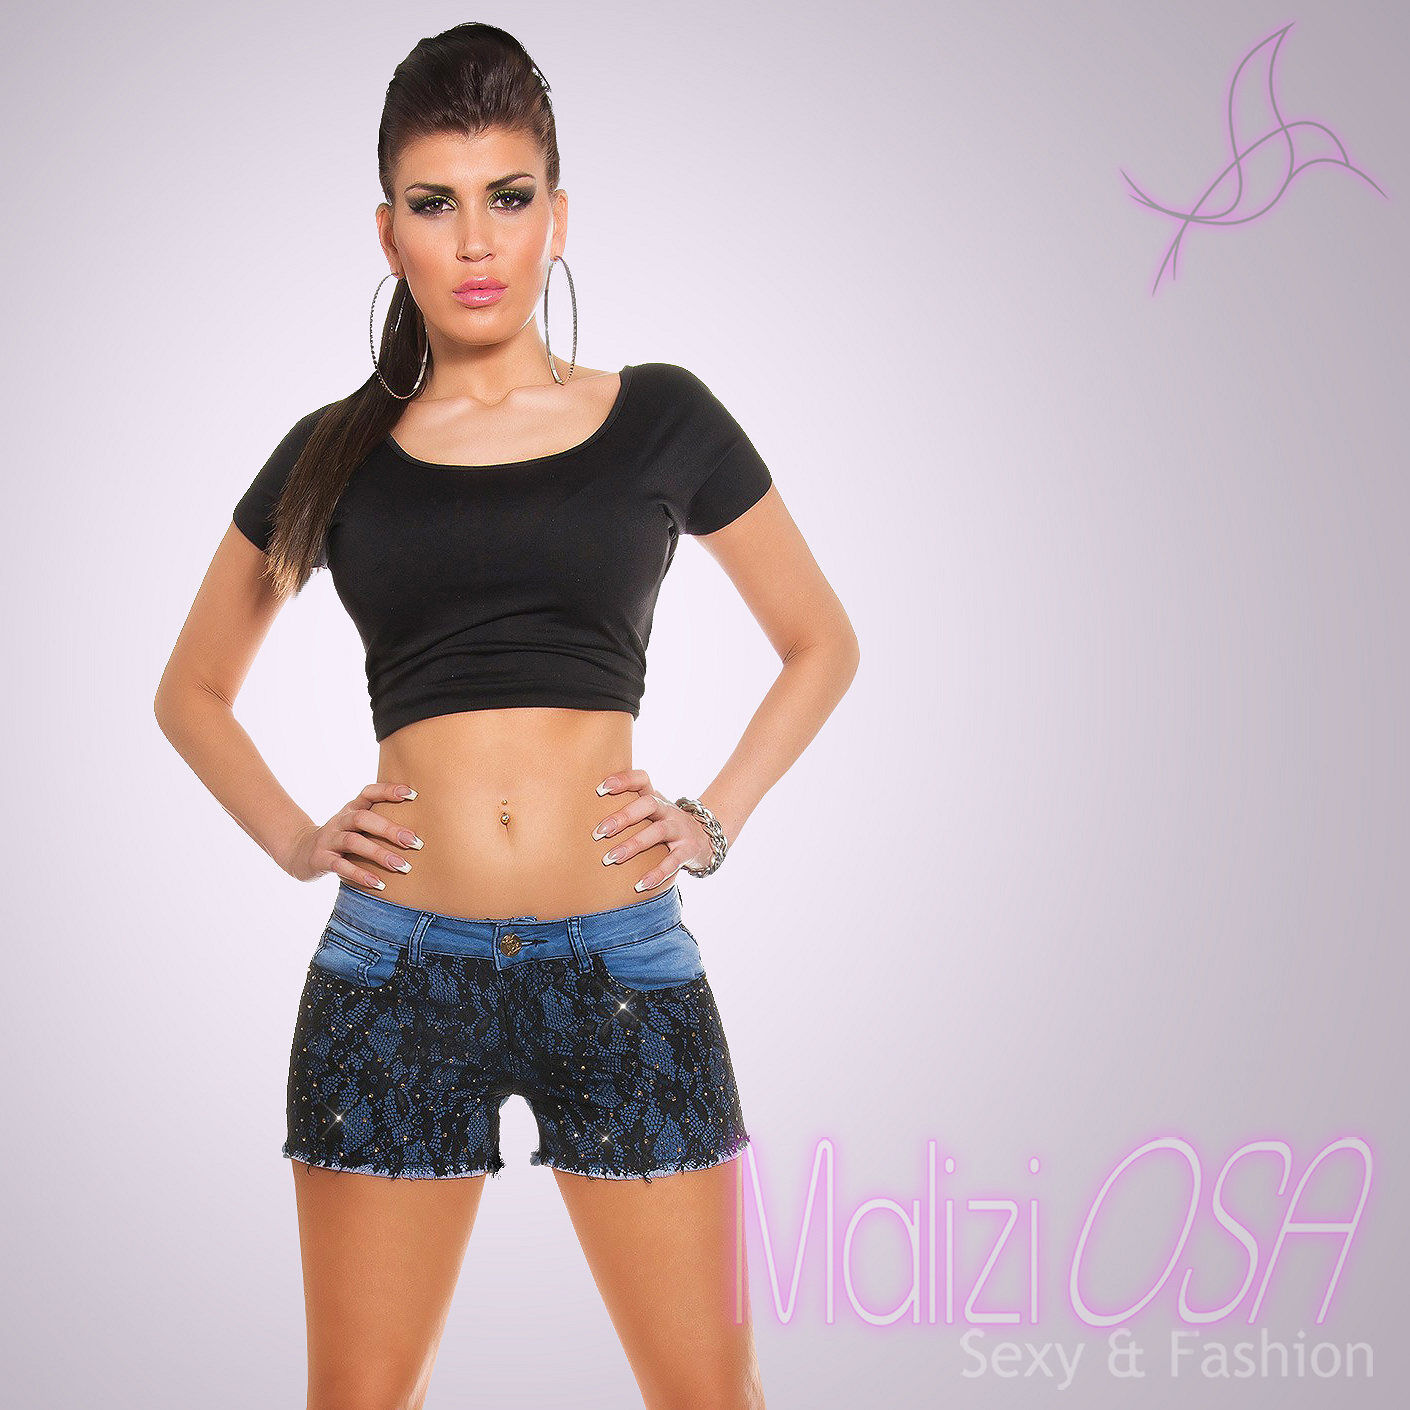 bc2b94c9af6217 Pantaloncini jeans donna shorts pizzo Strass hotpants skinny nuovi corti